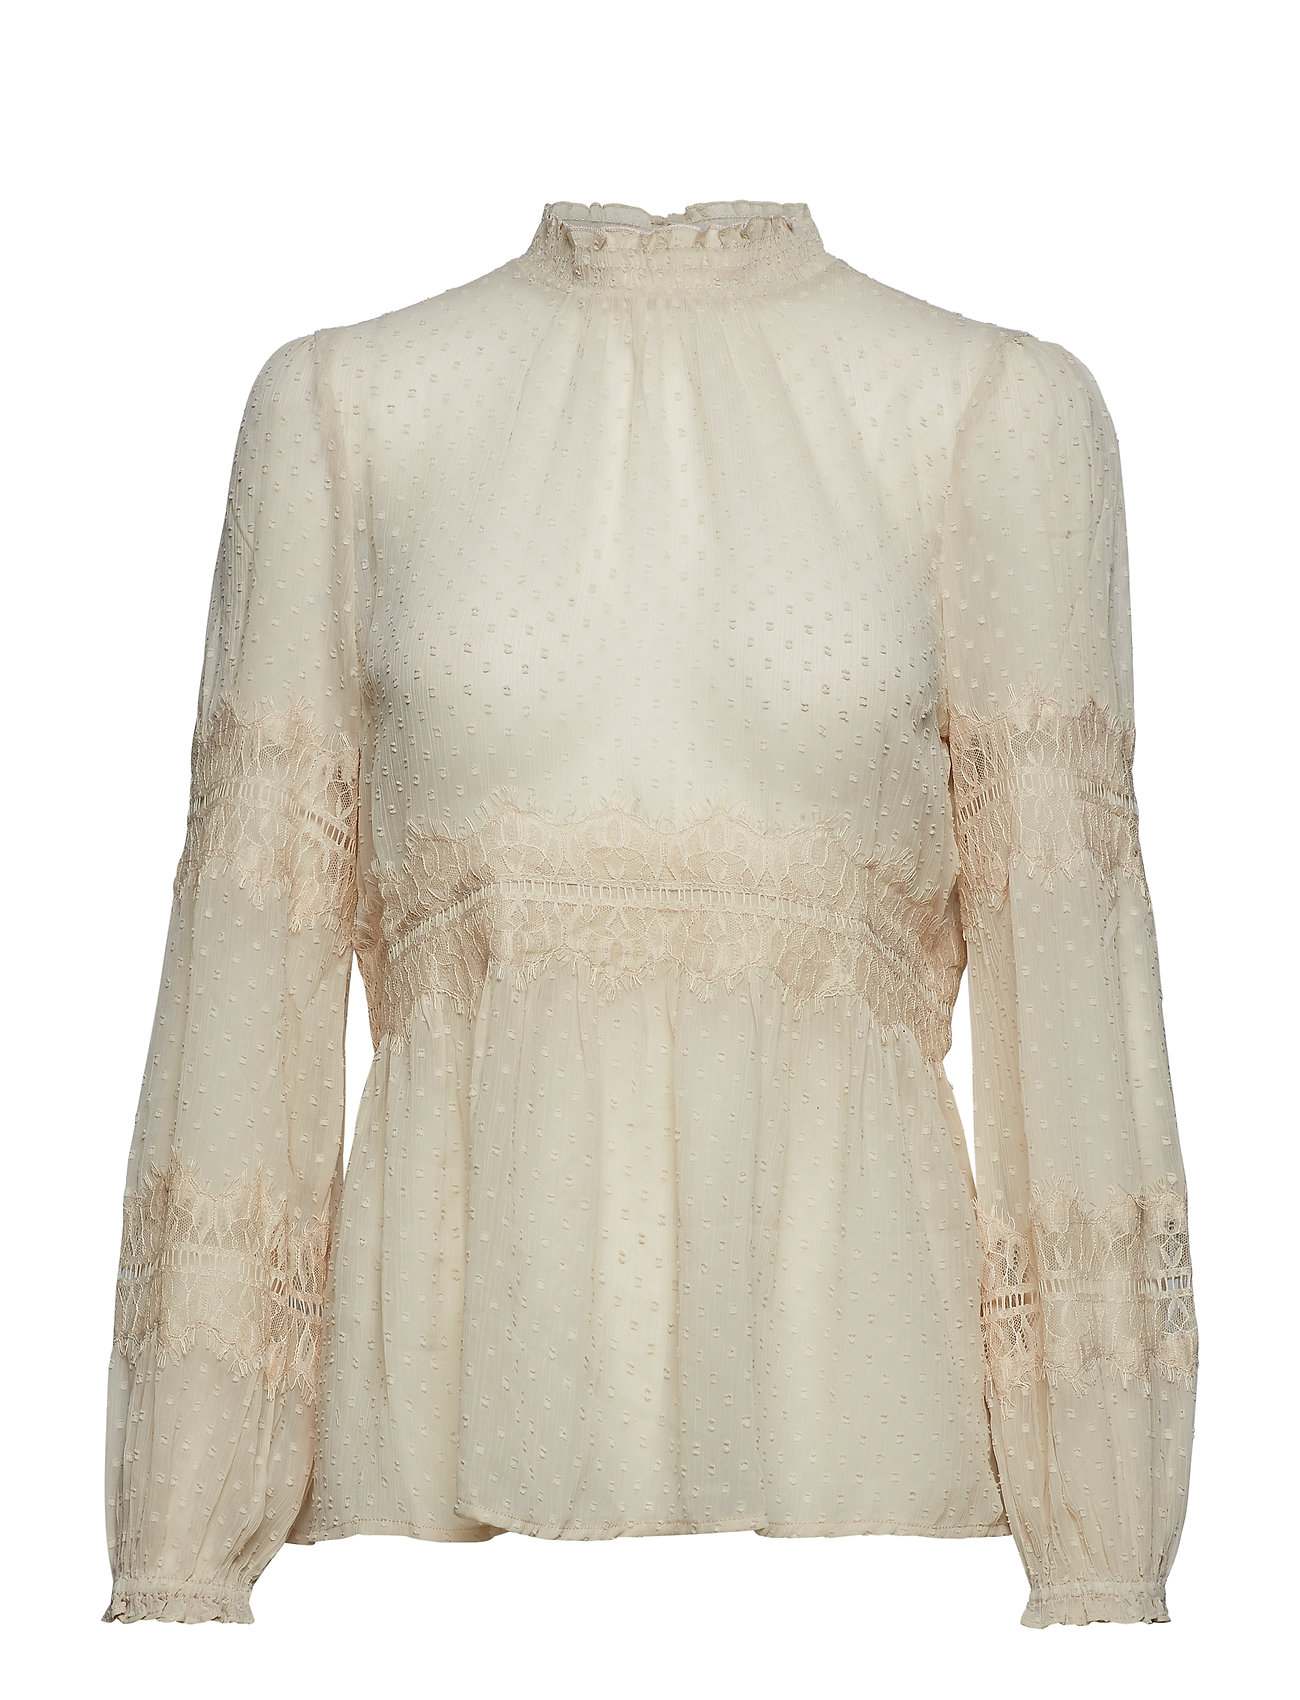 Cream Scarlett Blouse - SOFT BEIGE